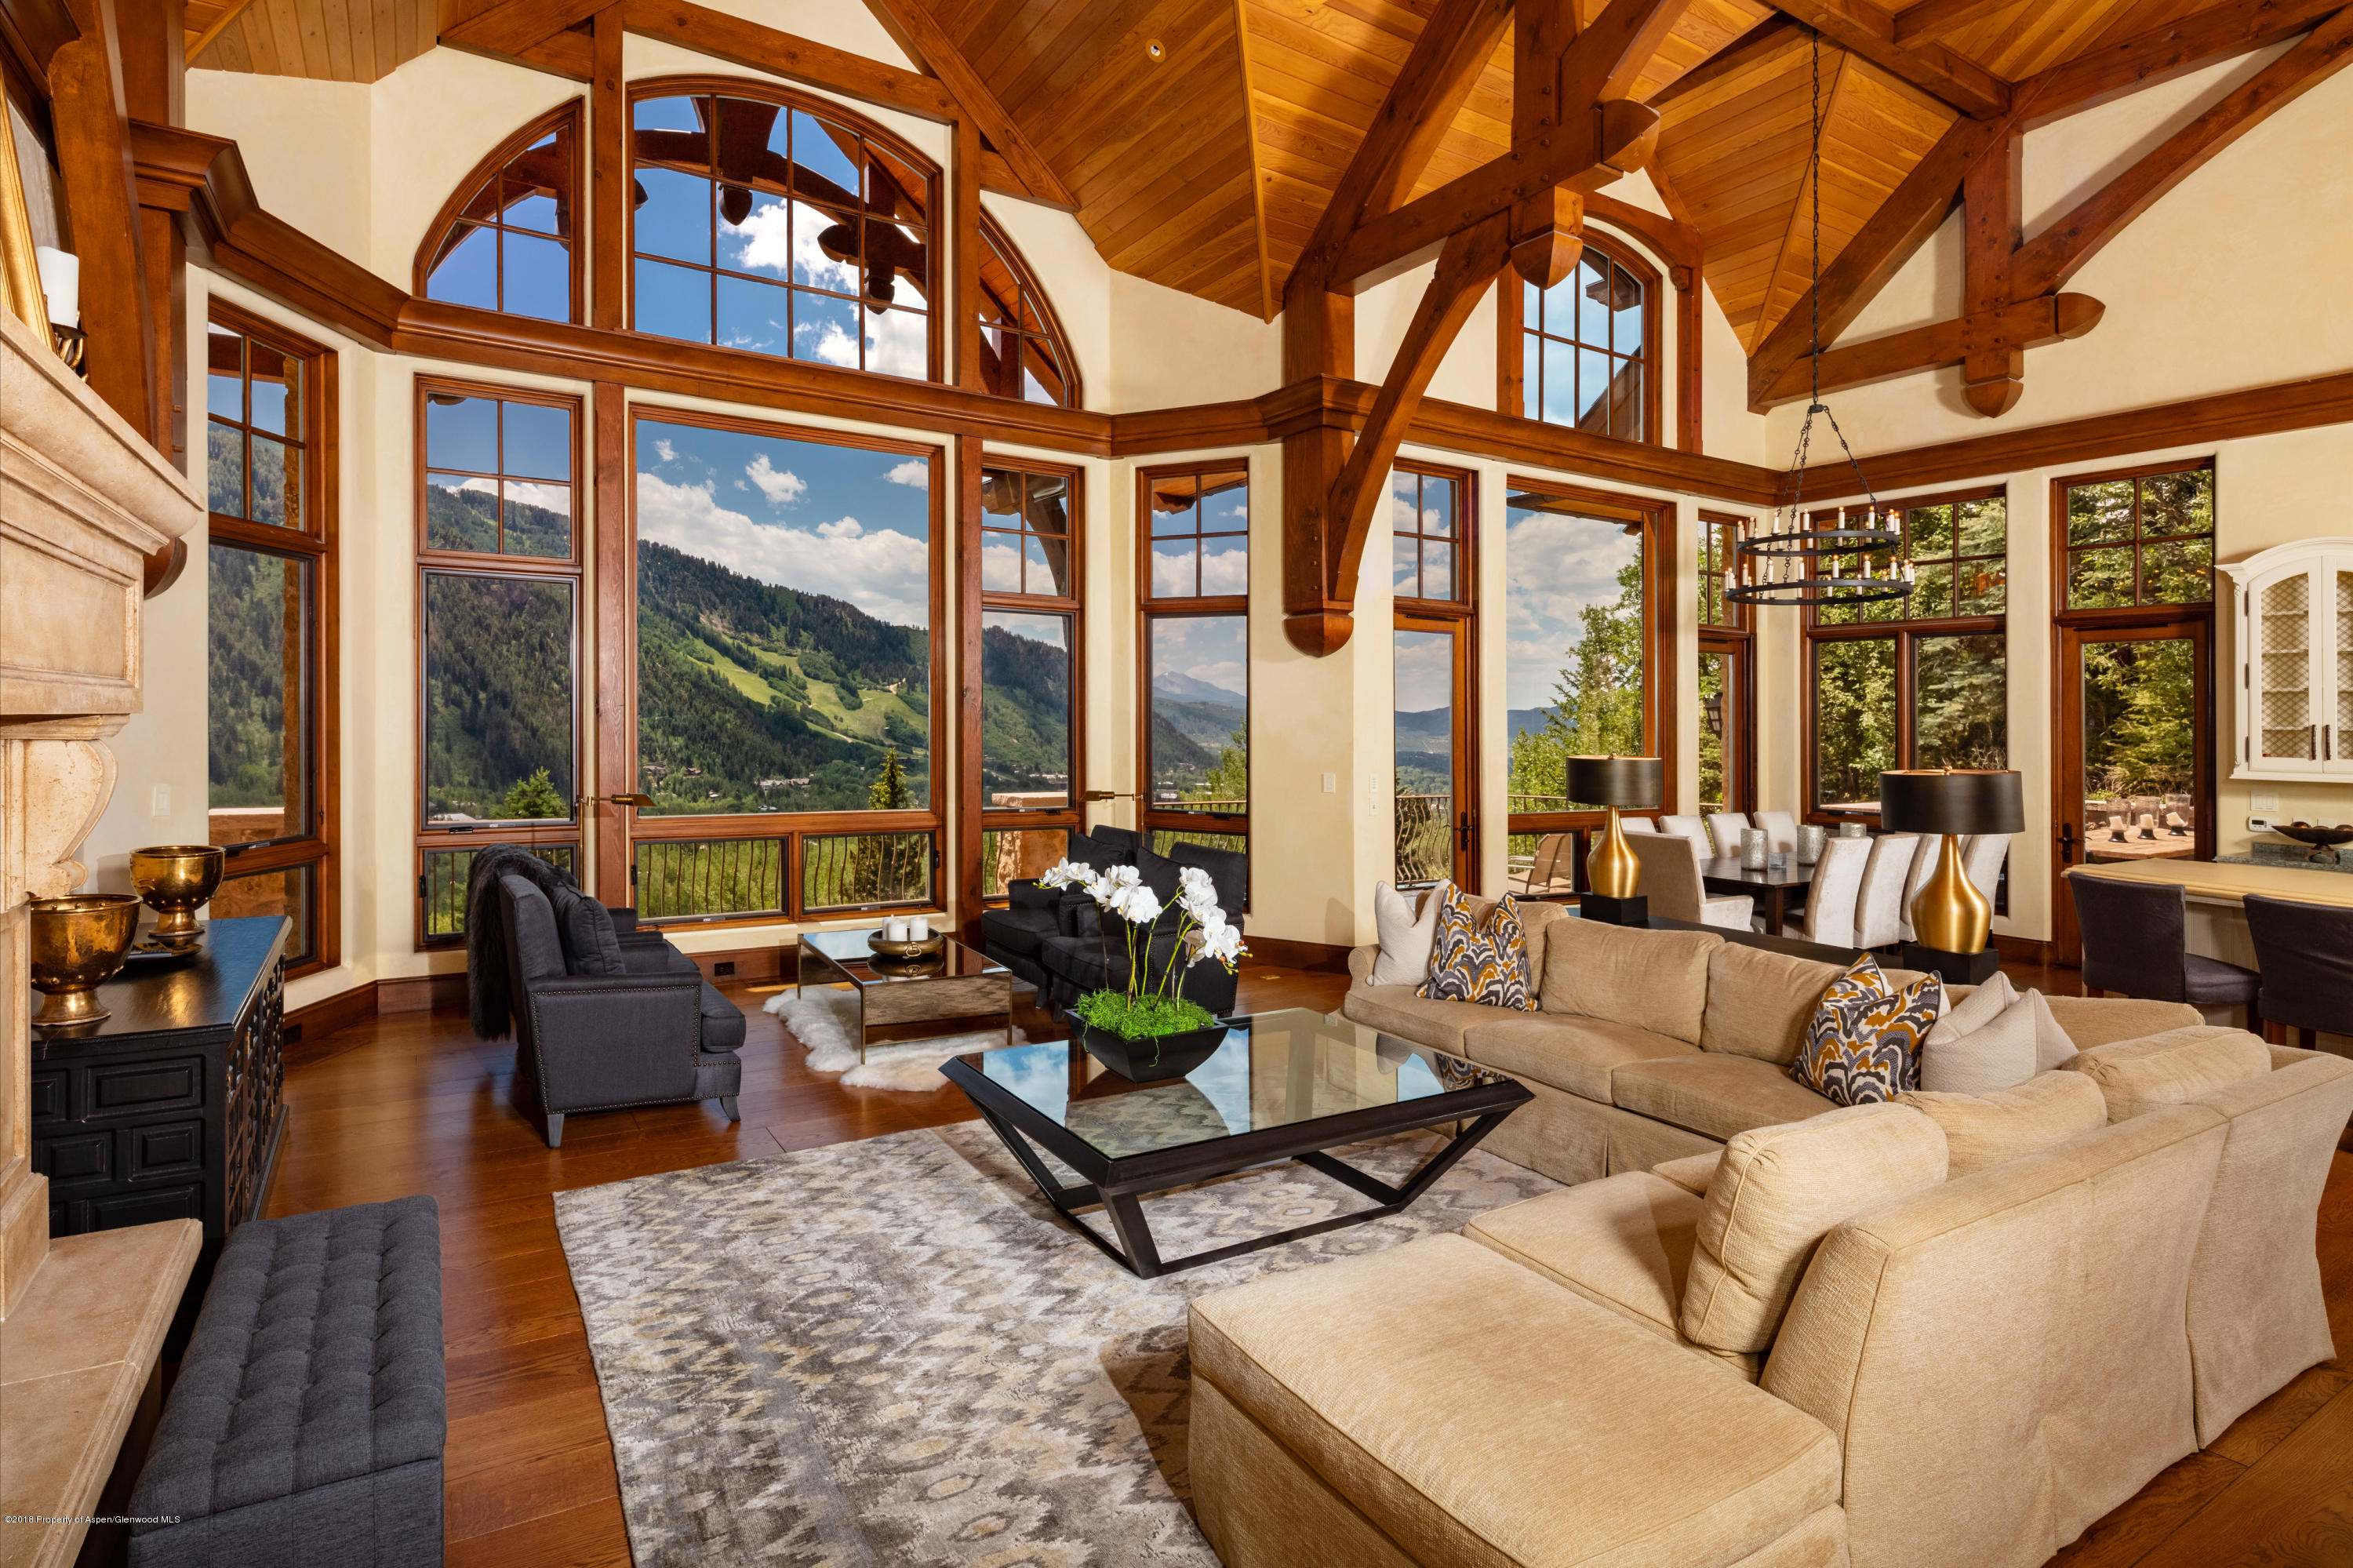 681 Mountain Laurel Drive - East Aspen, Colorado